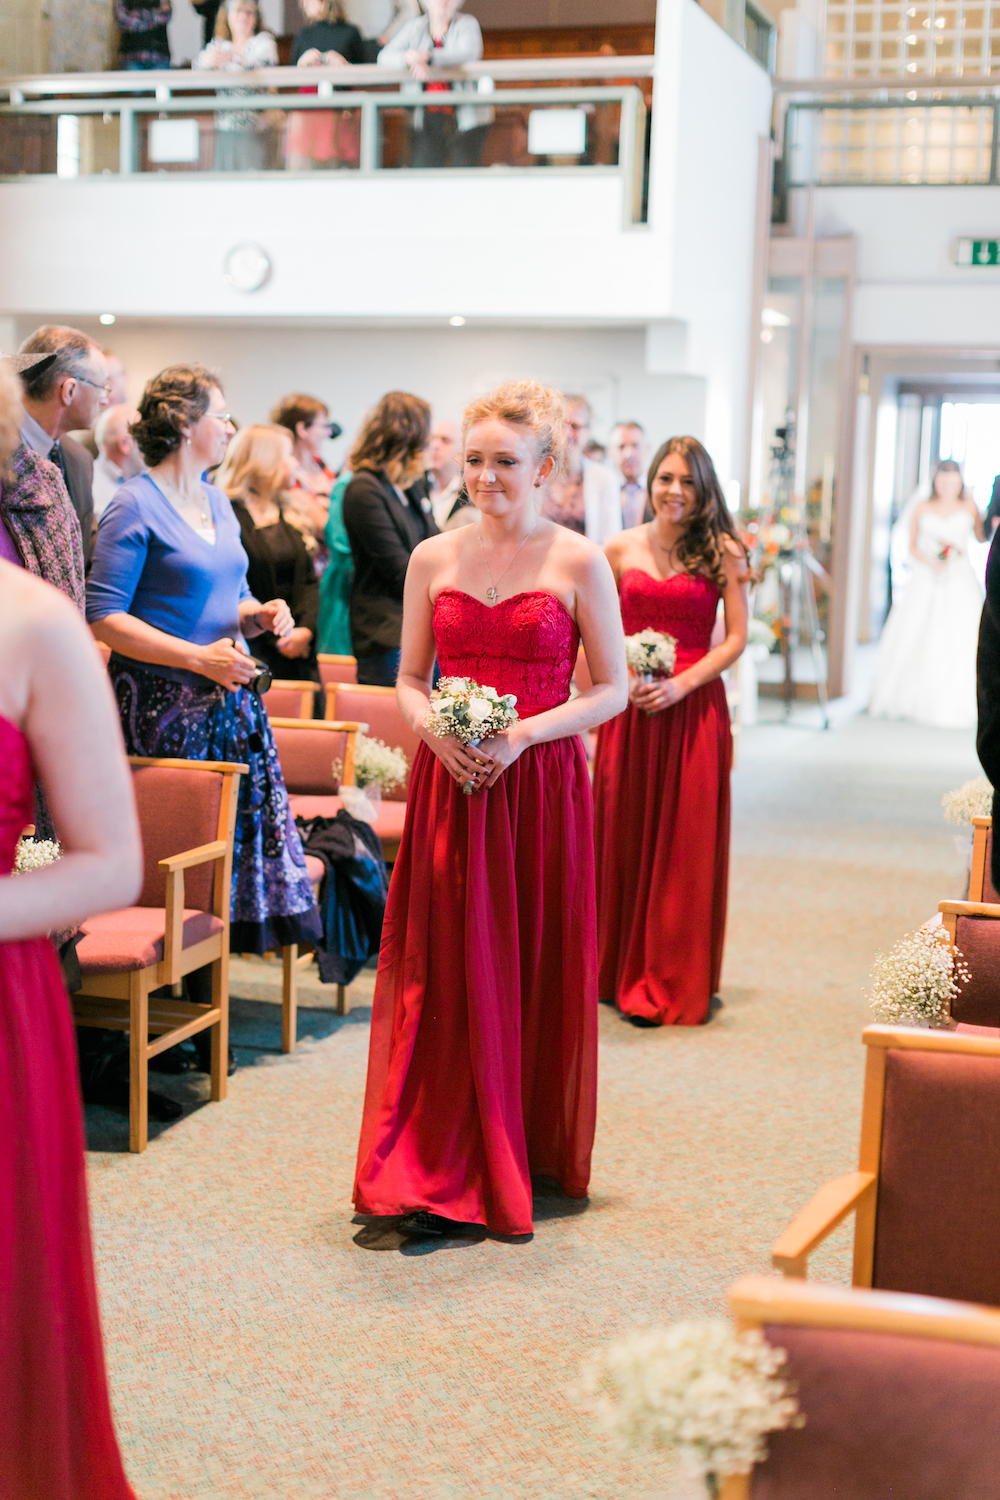 red-and-white-wedding-lancashire-wedding-gibbon-bridge-hotel-in-preston-winter-wedding-jam-table-names-hannah-k-photography-20